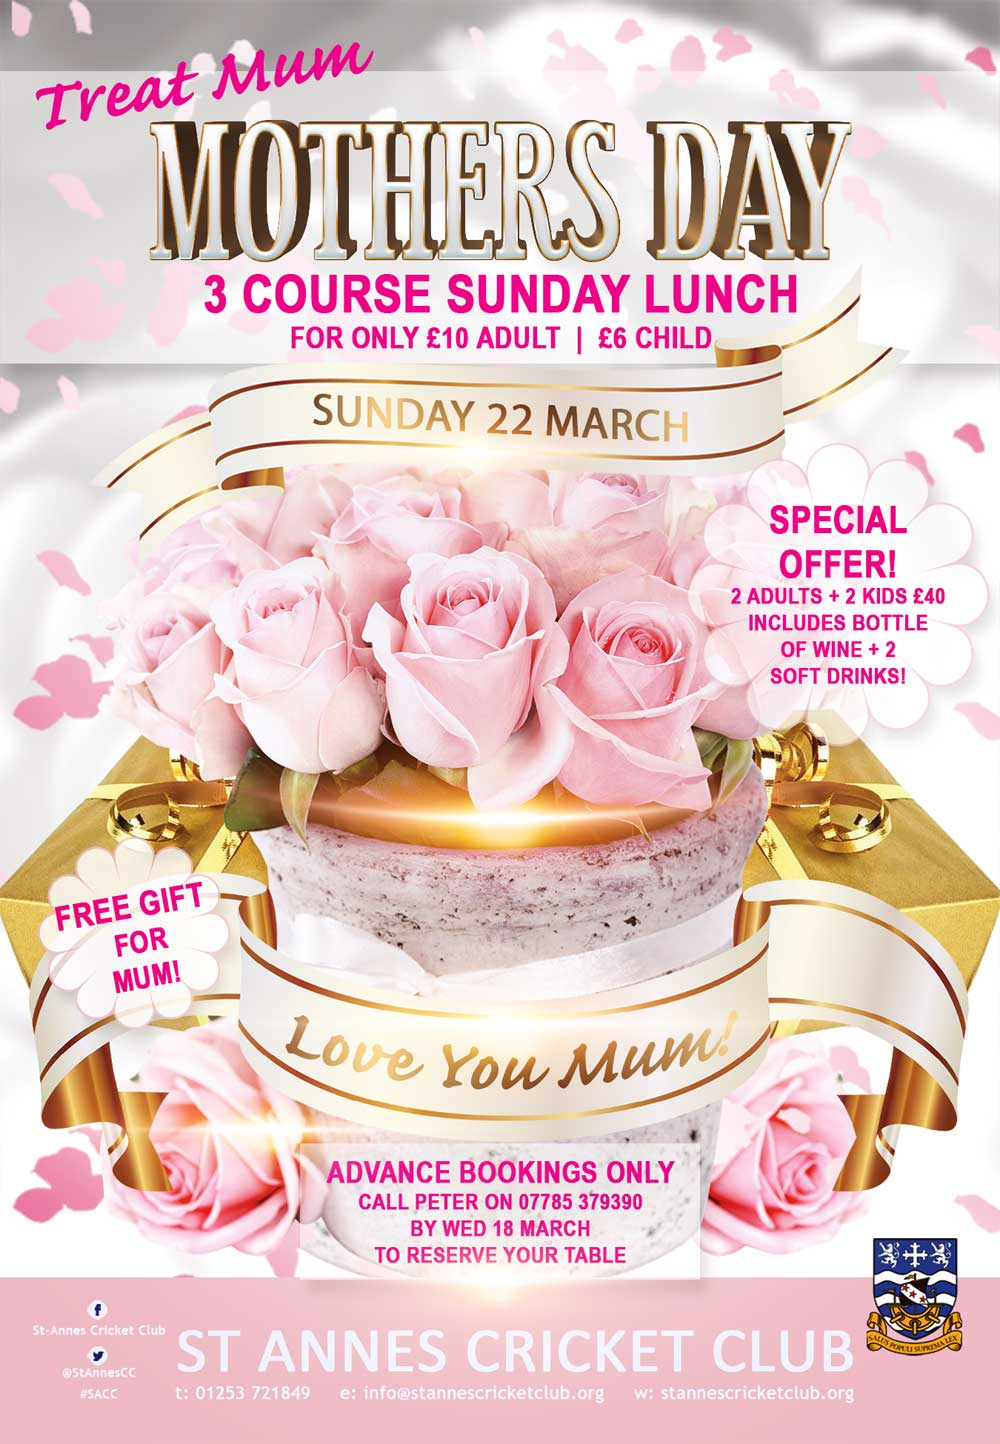 Treat Mum to a delicious 3 course Sunday Lunch with all the trimmings at St Annes CC